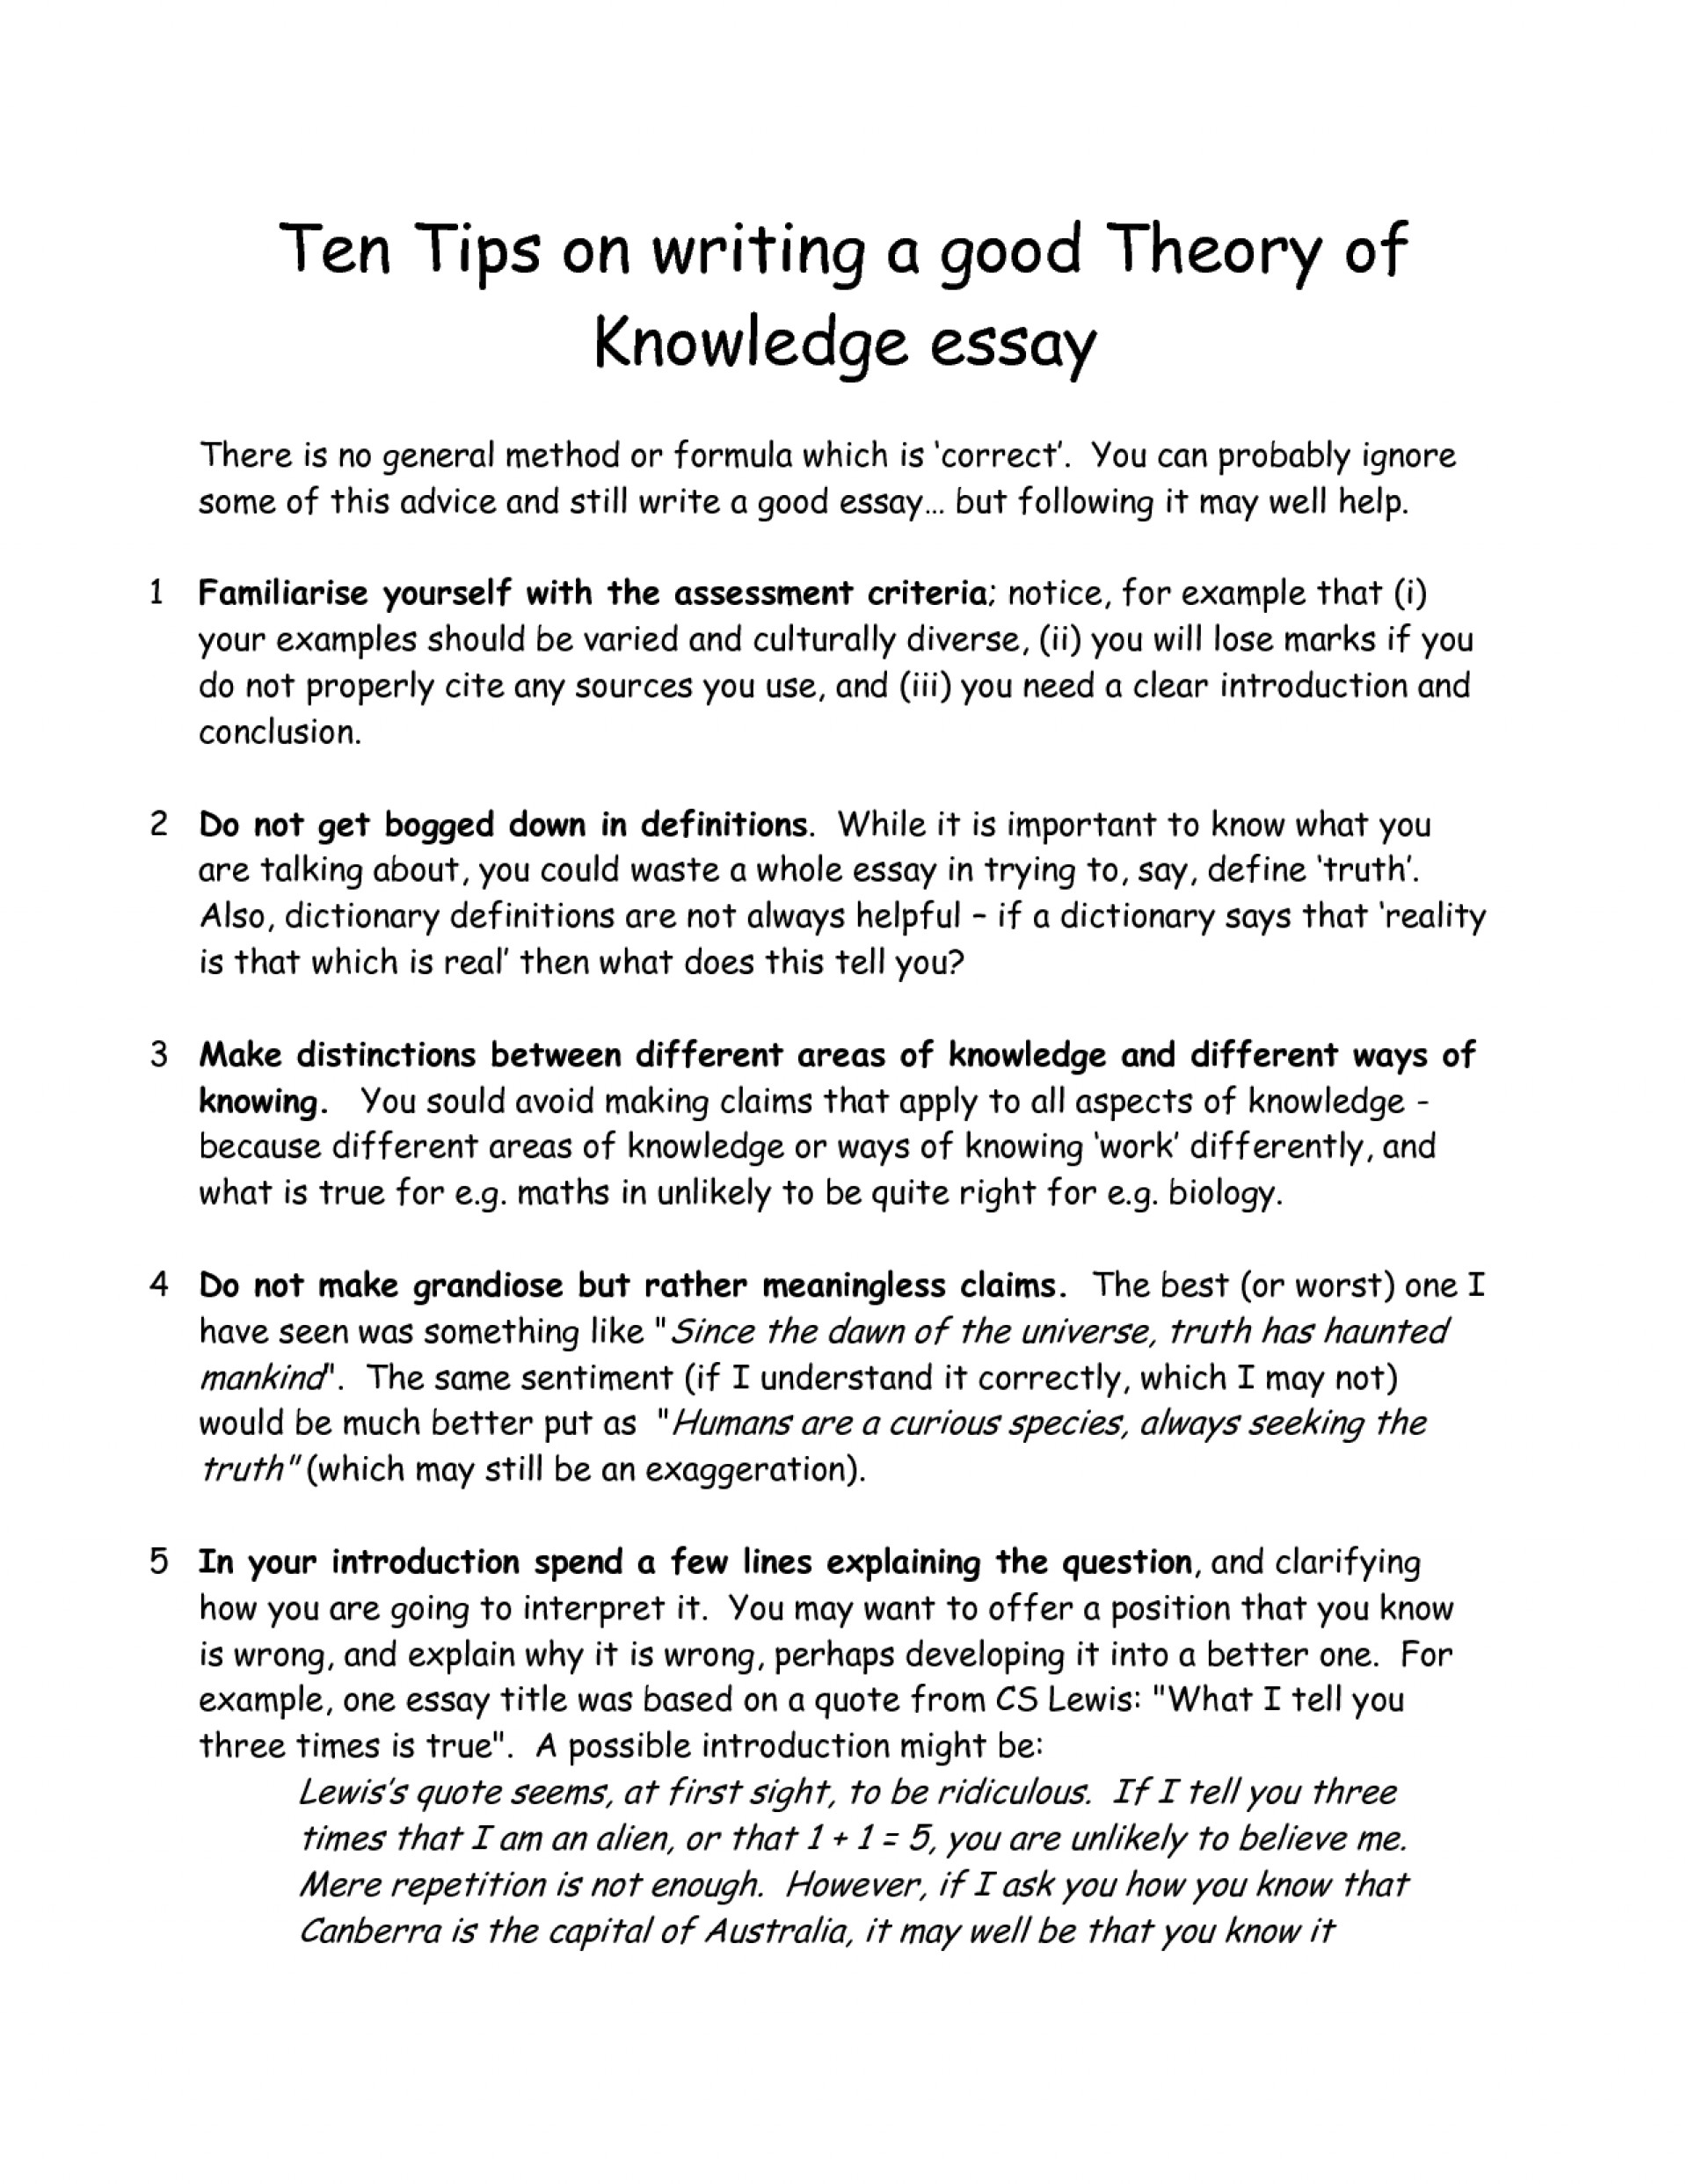 003 Qqllg0v8ct Essay Example How To Write About Singular A Yourself Narrative Short Myself Paper Without Using I 1920